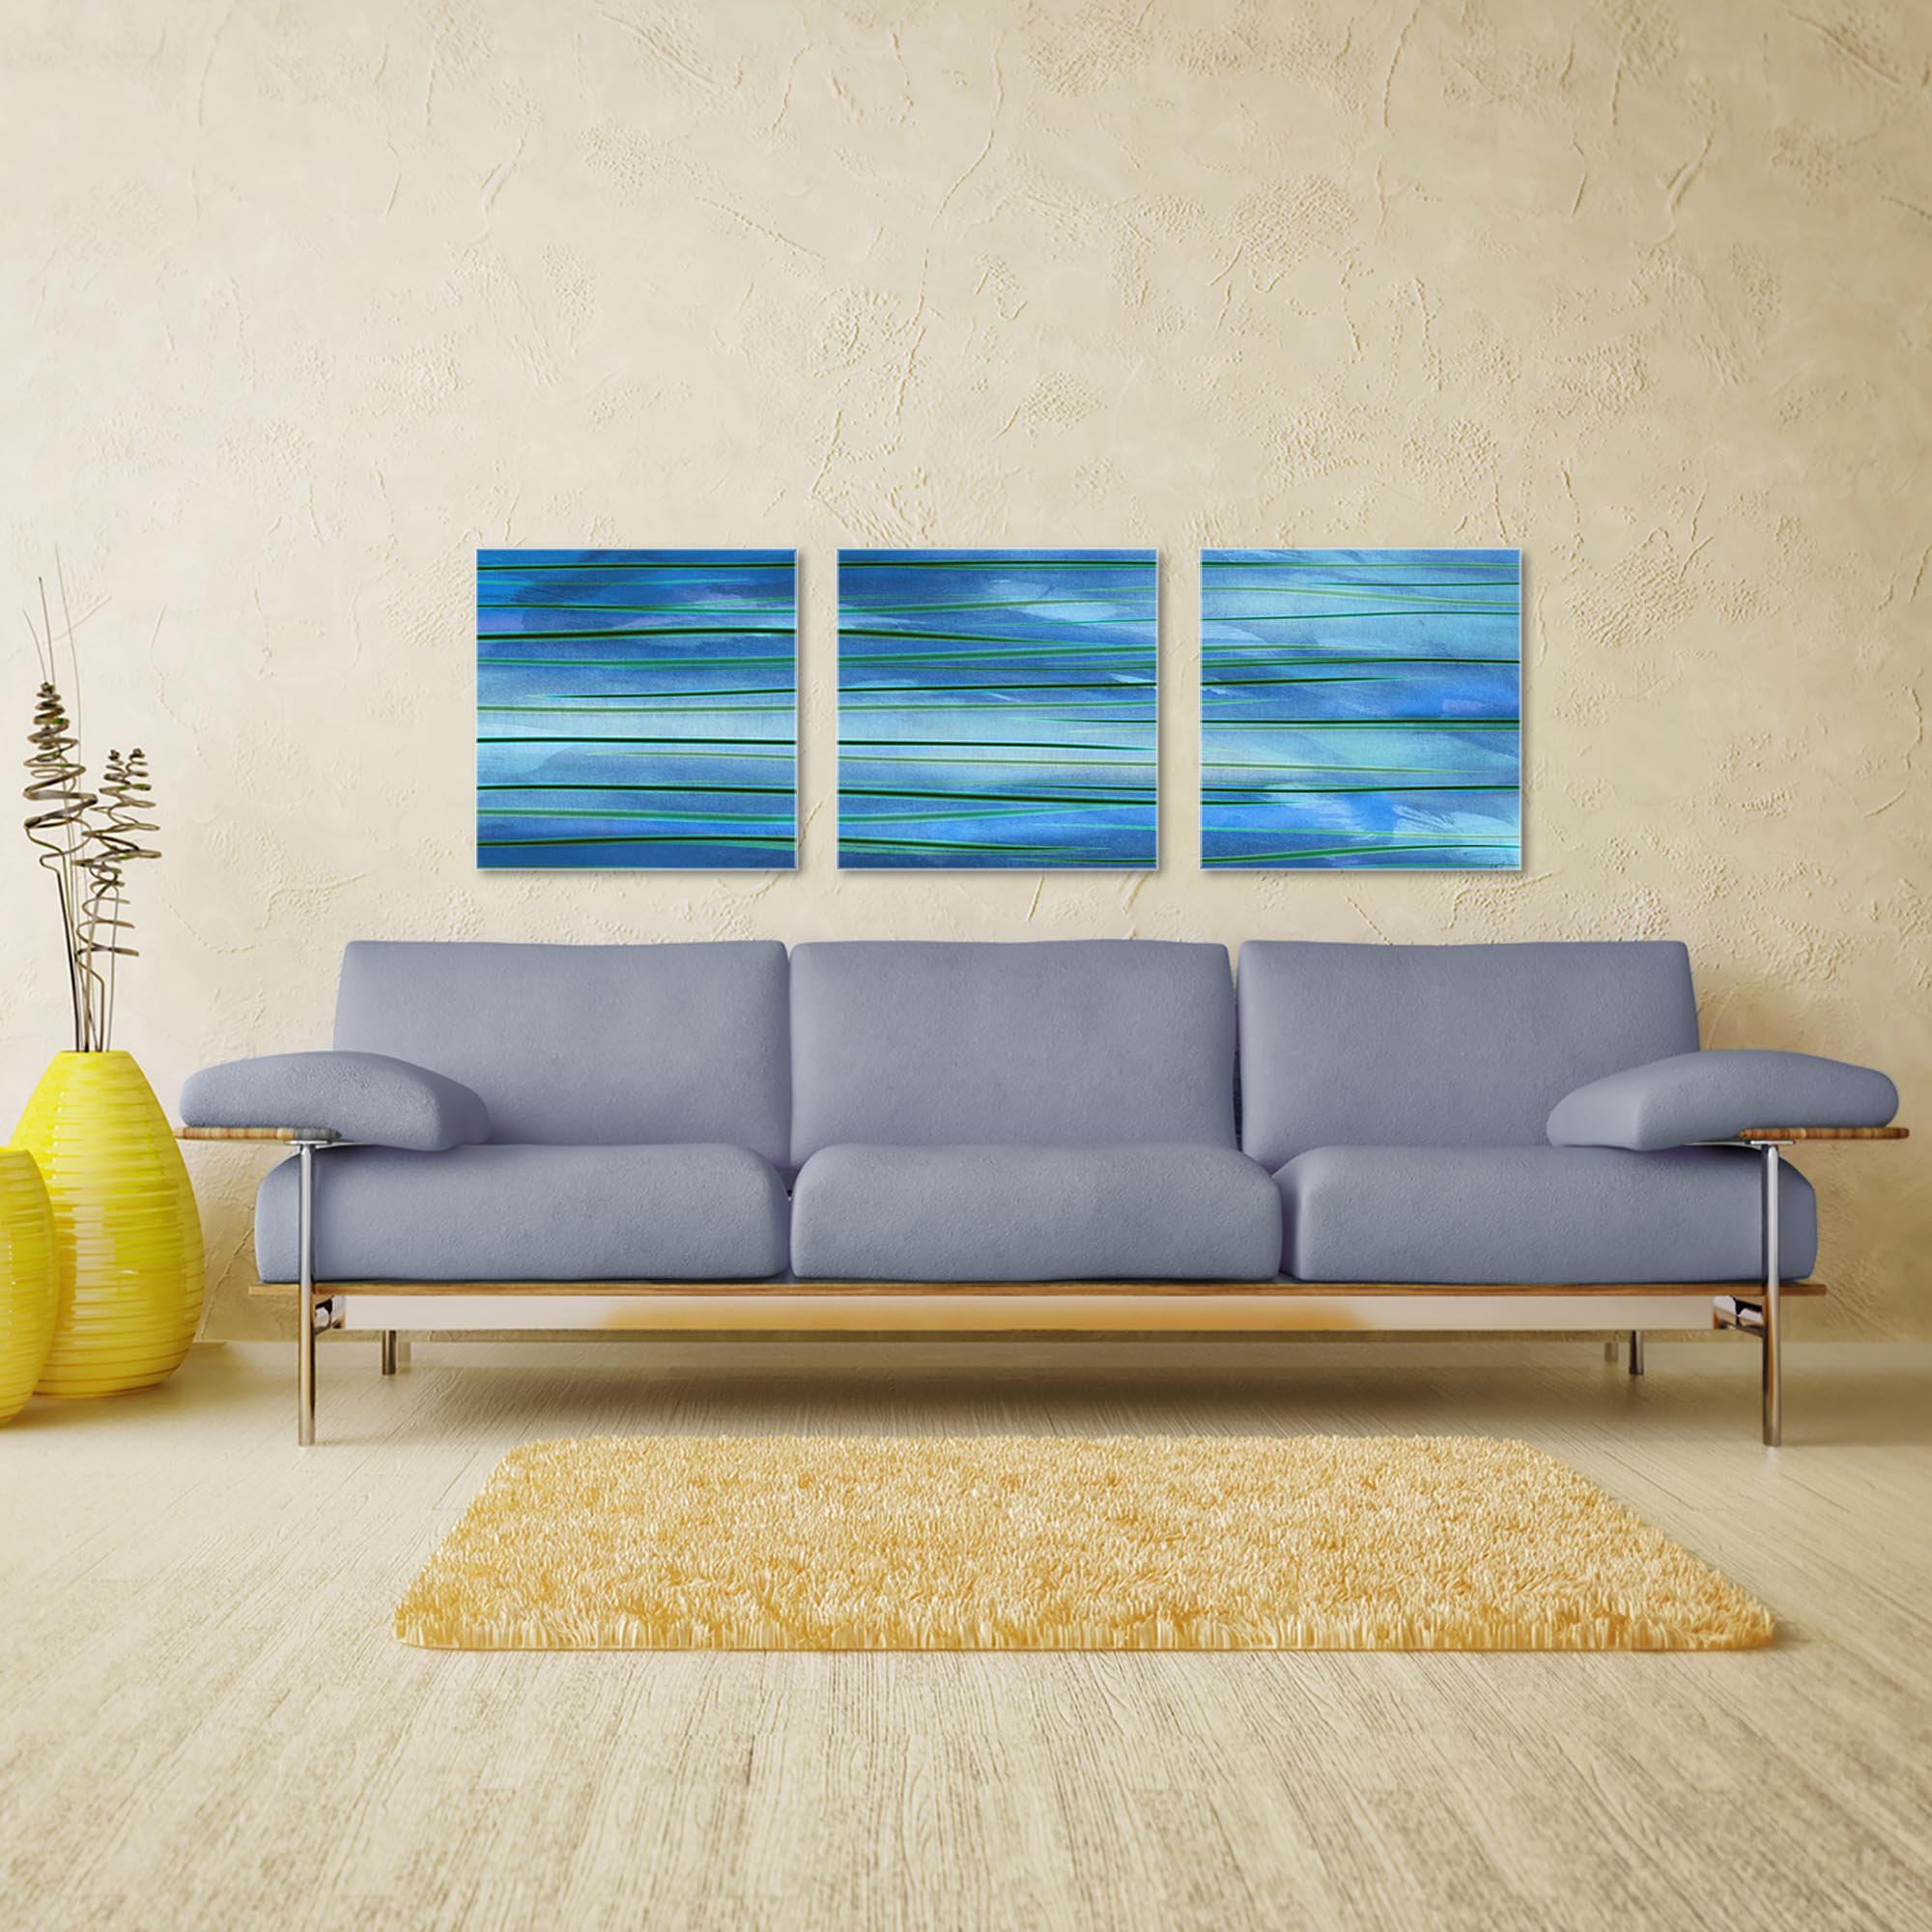 Ocean View Triptych Large 70x22in. Metal or Acrylic Abstract Decor - Image 3